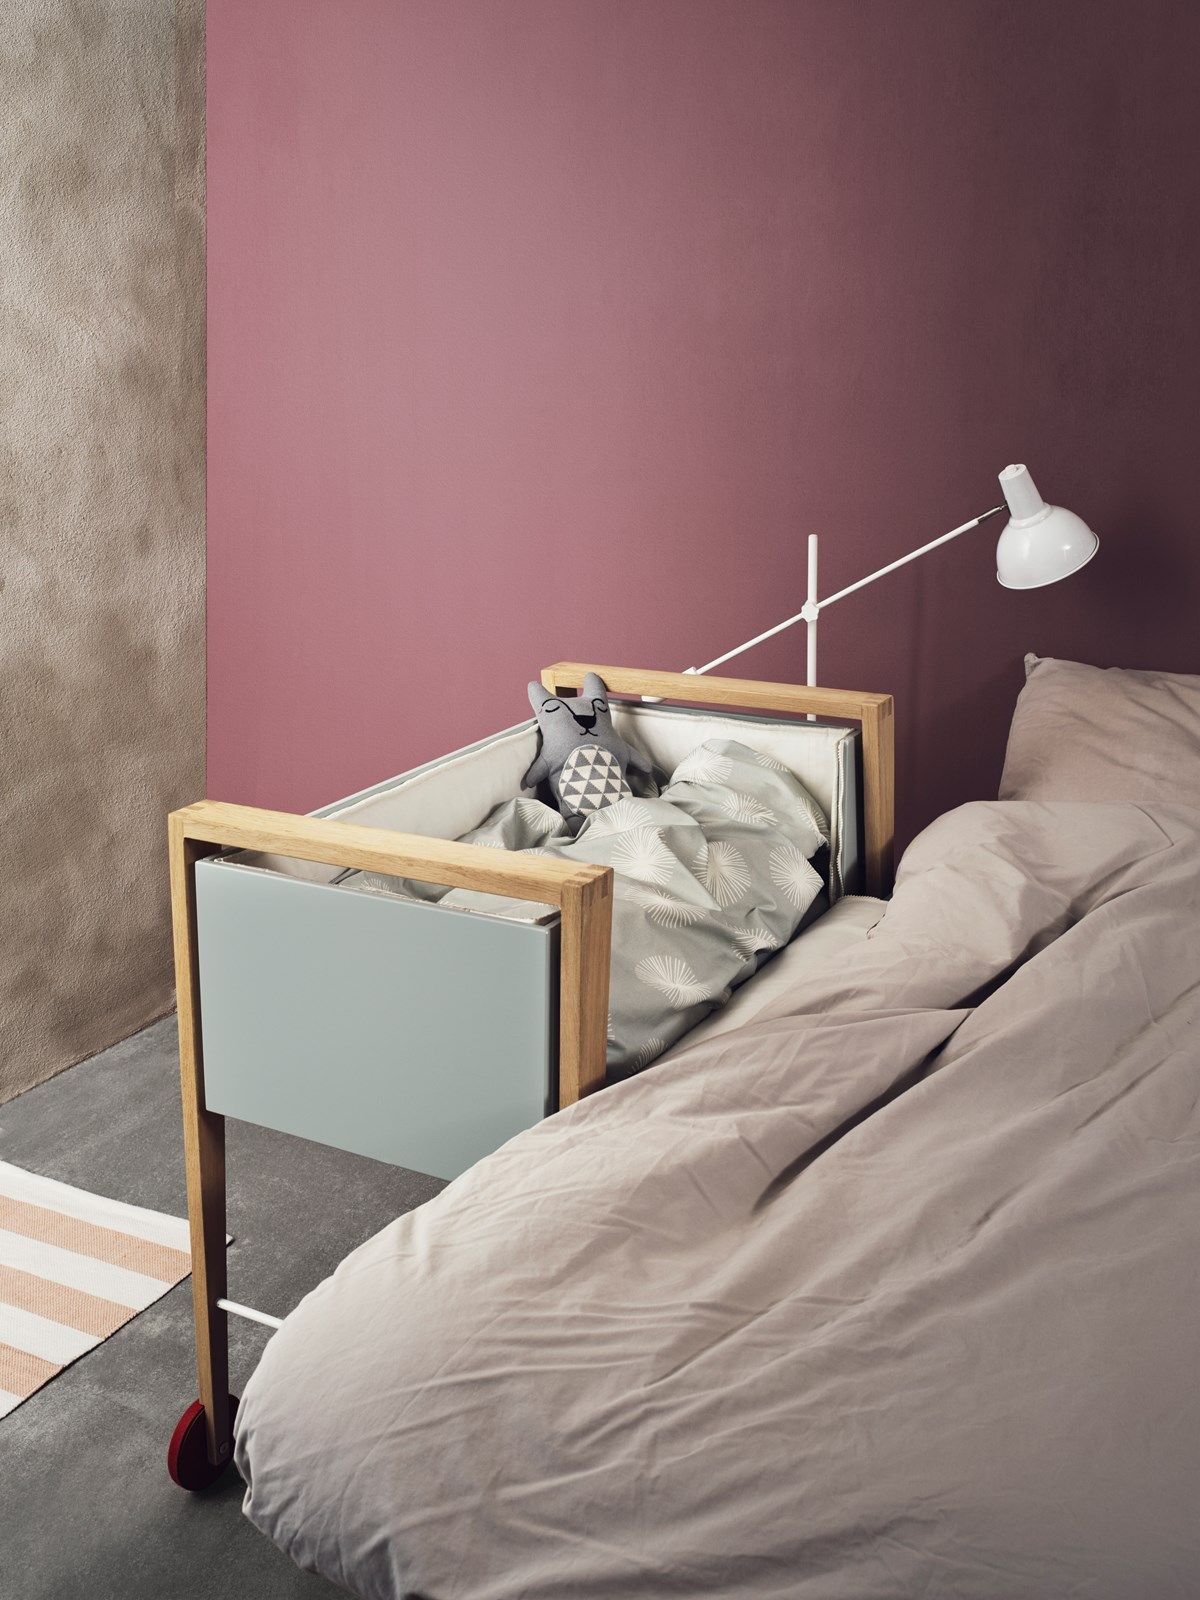 Linea Bedroom Furniture Linea By Leander Babies Rooms Kids Rooms And Painted Houses